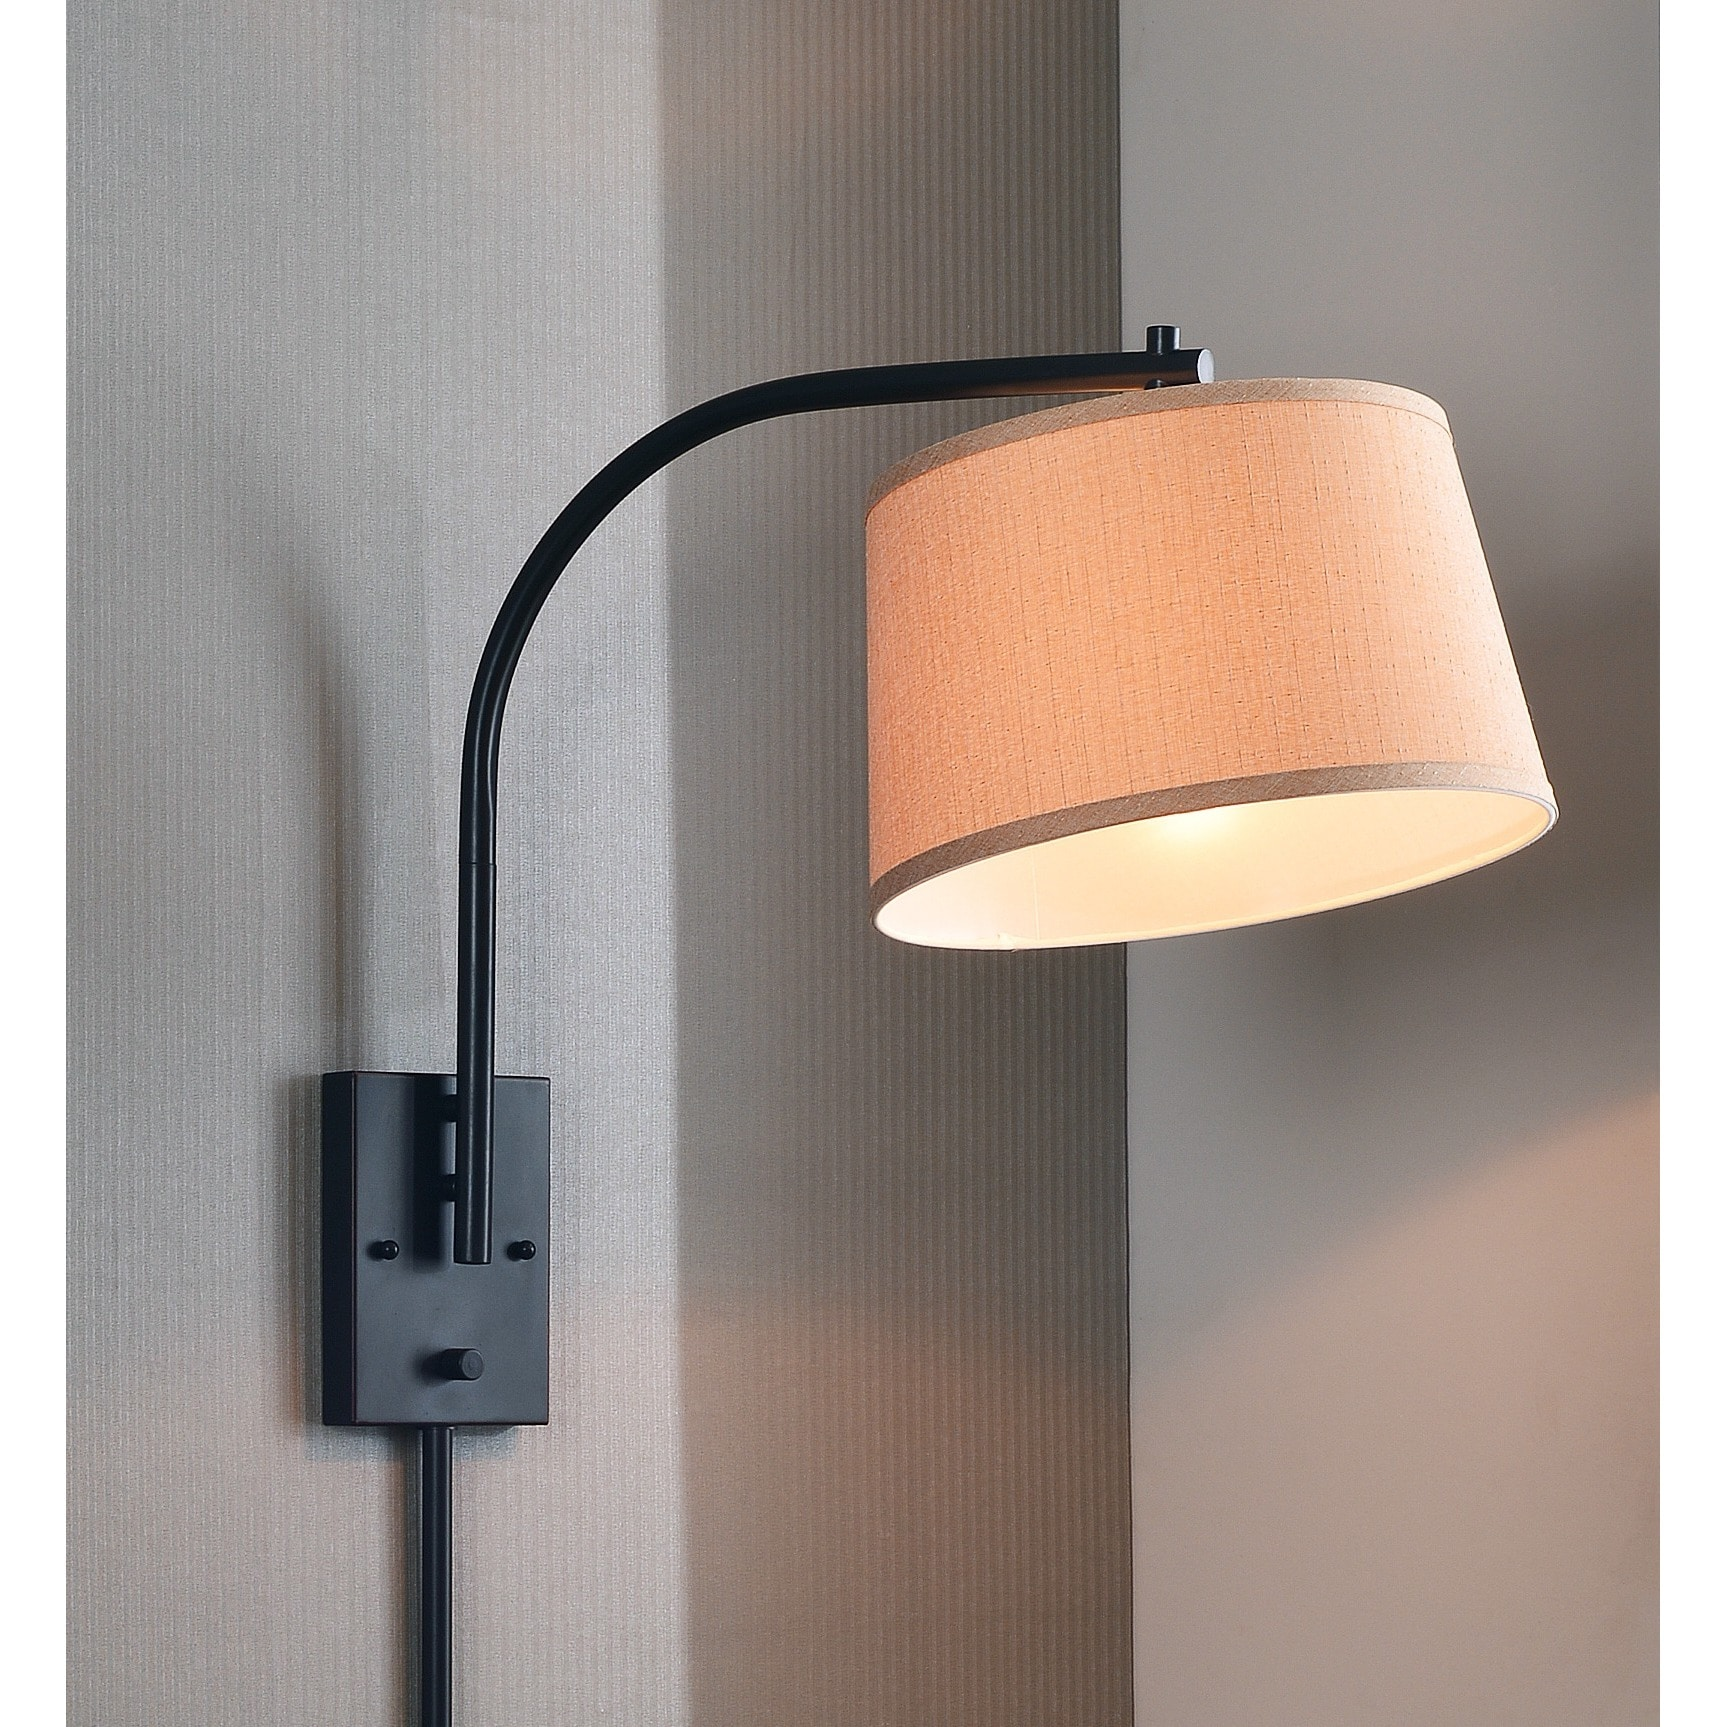 Design Craft Hackett 21-inch Wall Swing Arm Lamp by Overstock